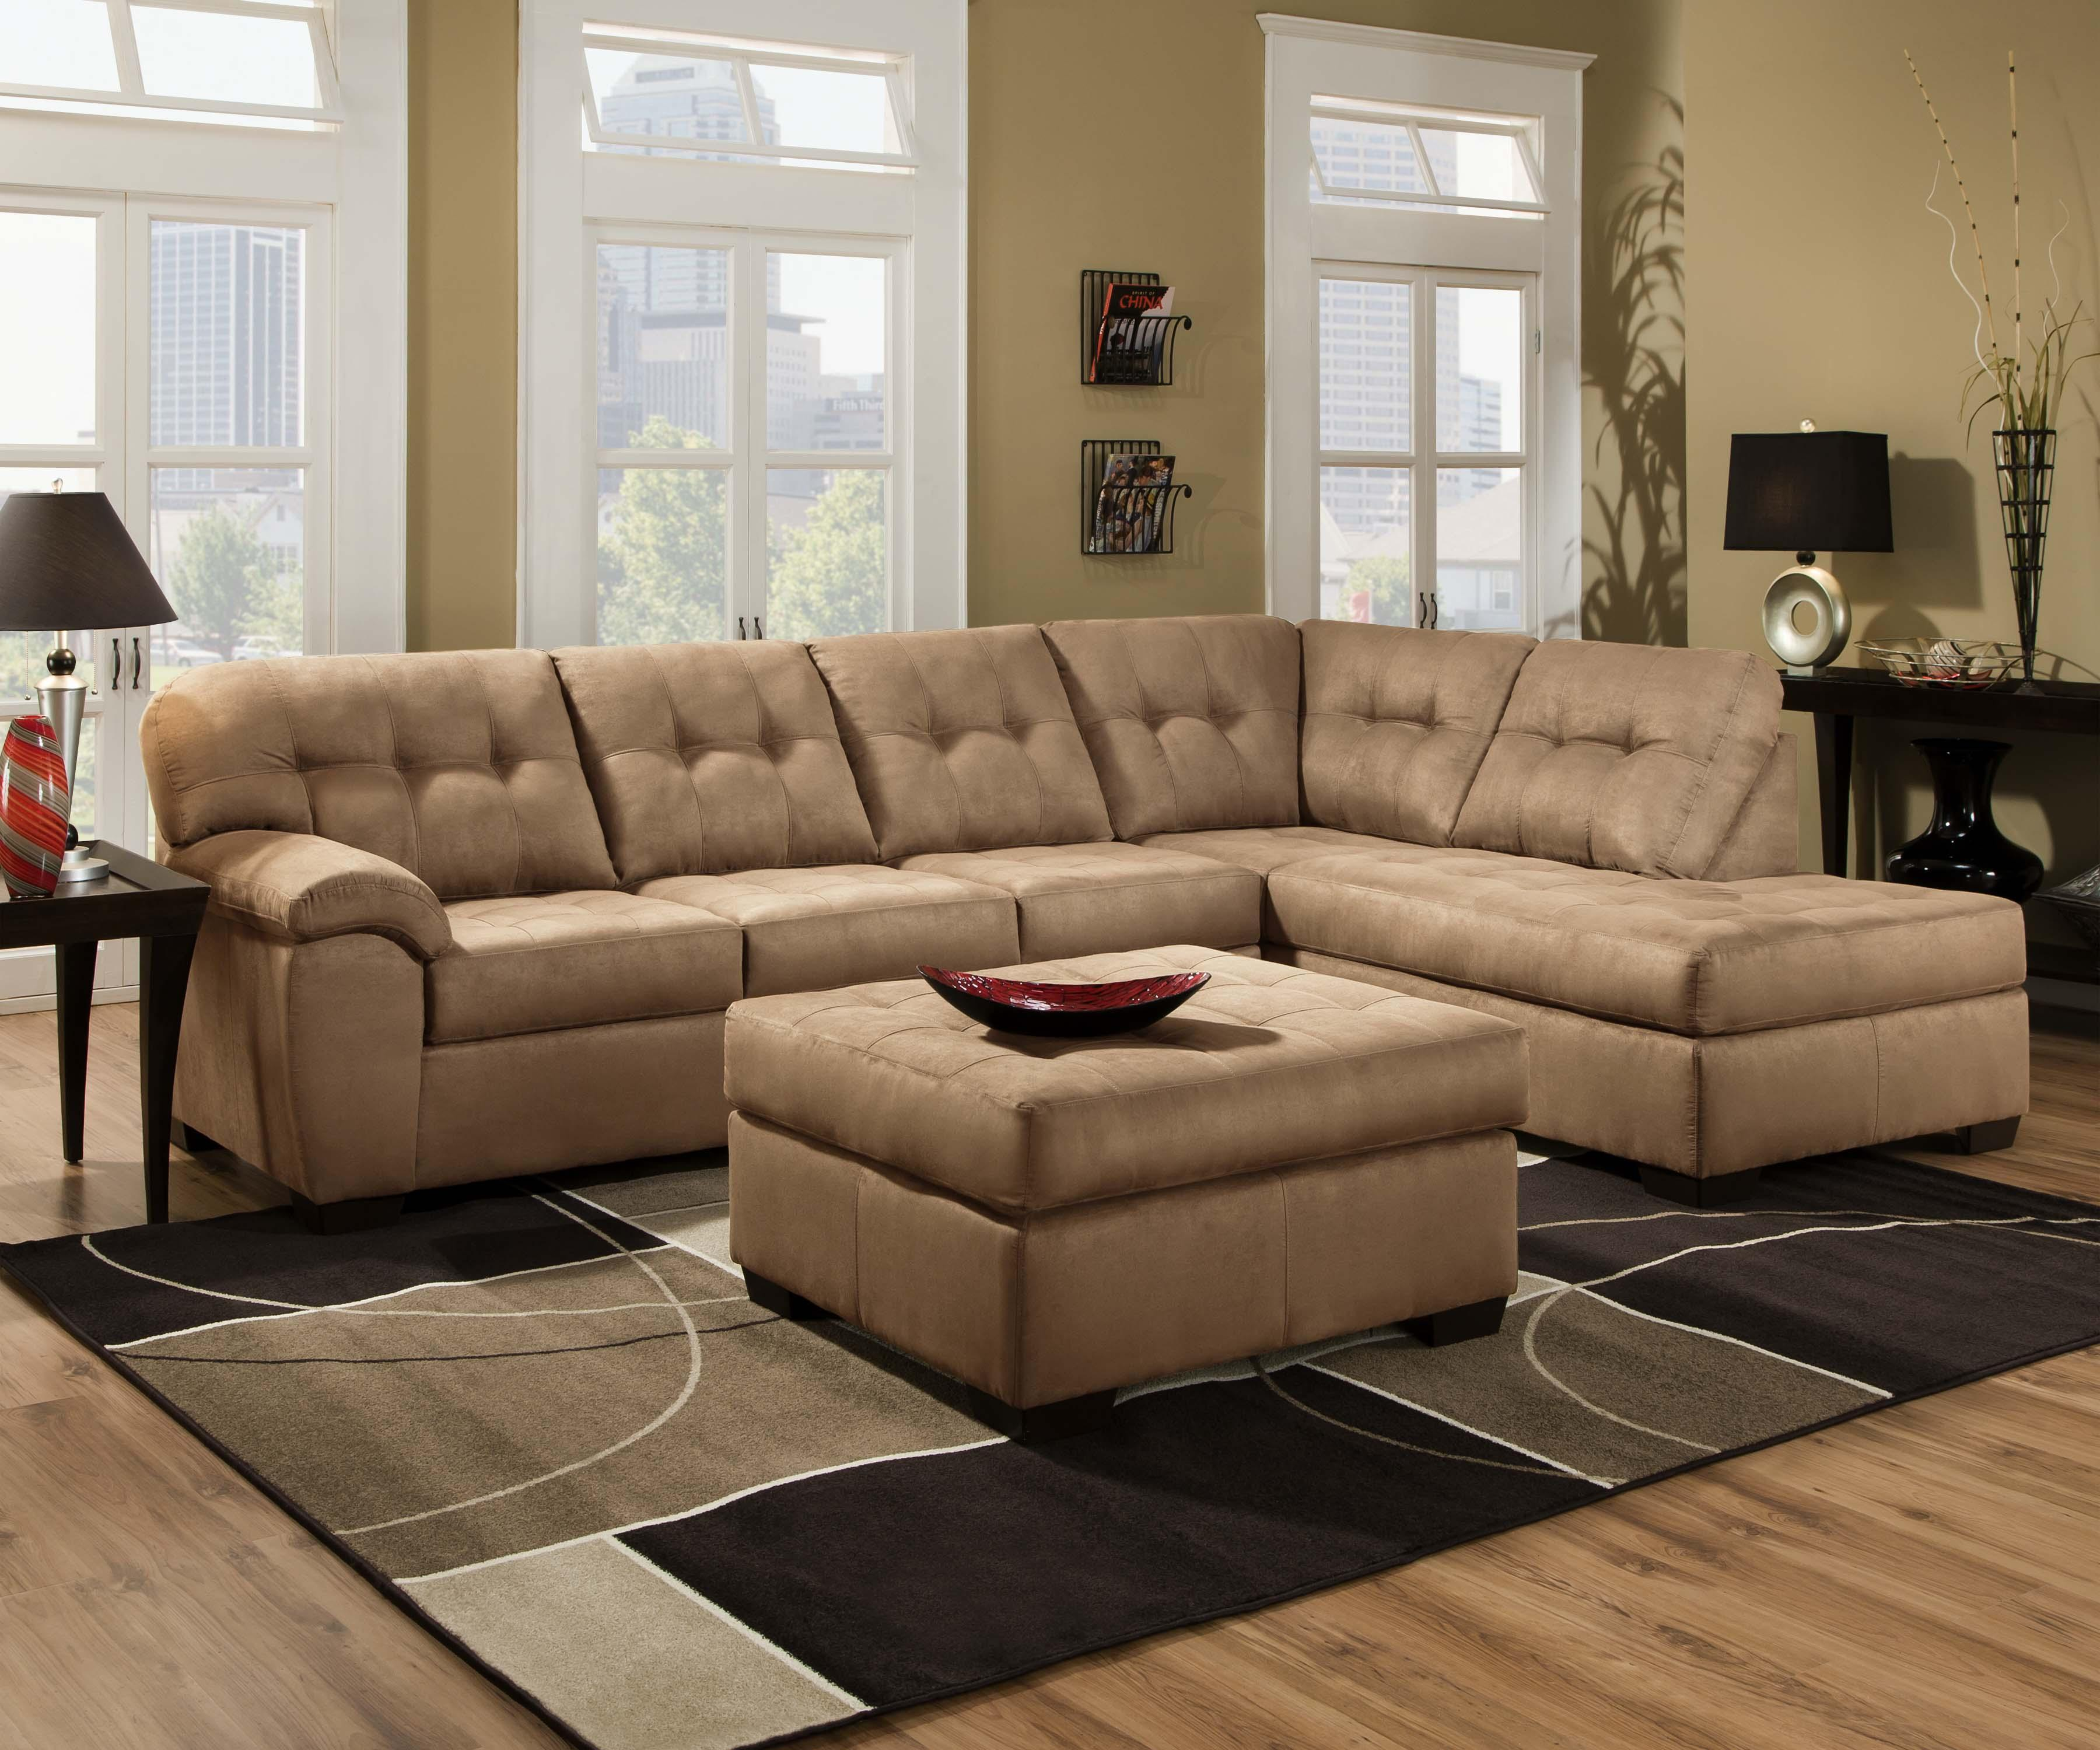 of design sectional sofa for rectangle with grey connected cream fabric on wooden furniture offer table by glass the brown entrancing cozy room sofas small idea floor living rug cushions